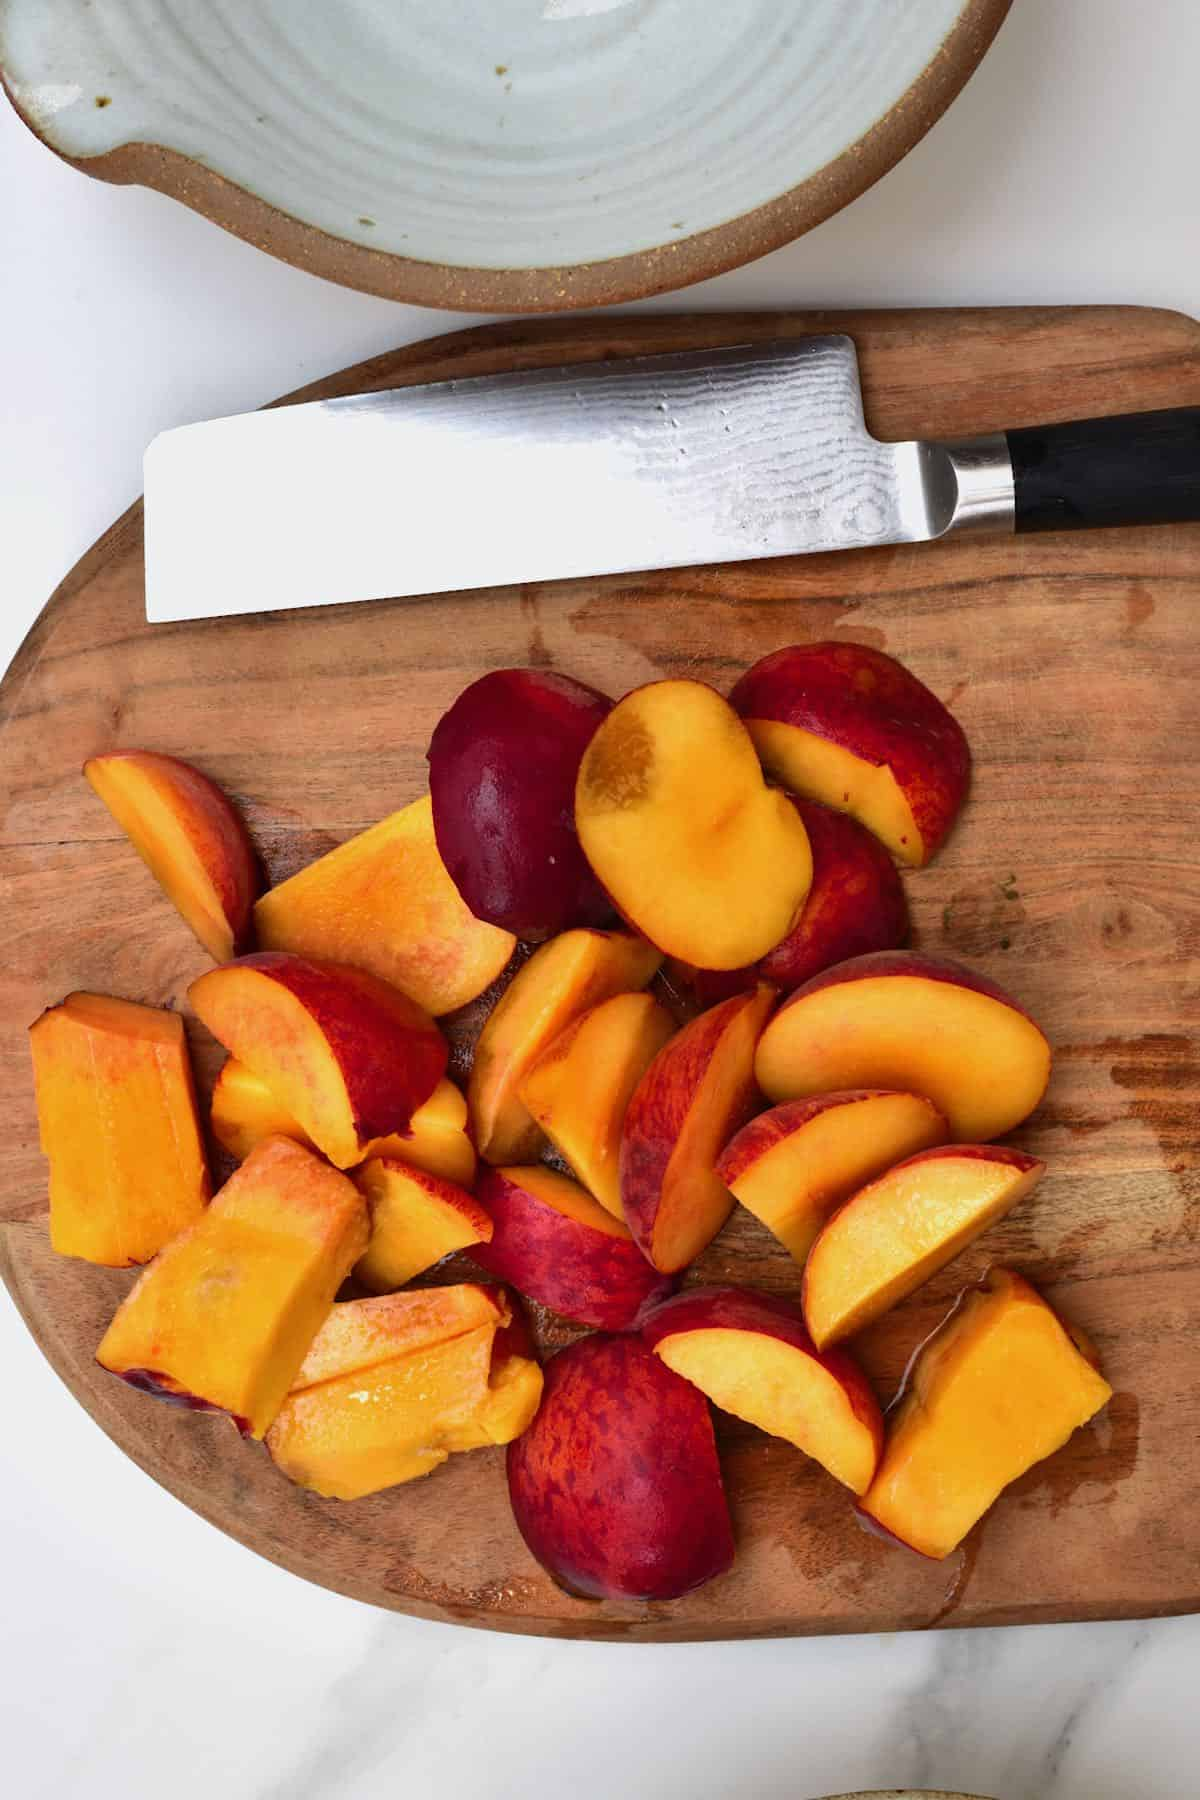 Chopped peaches on a wooden board